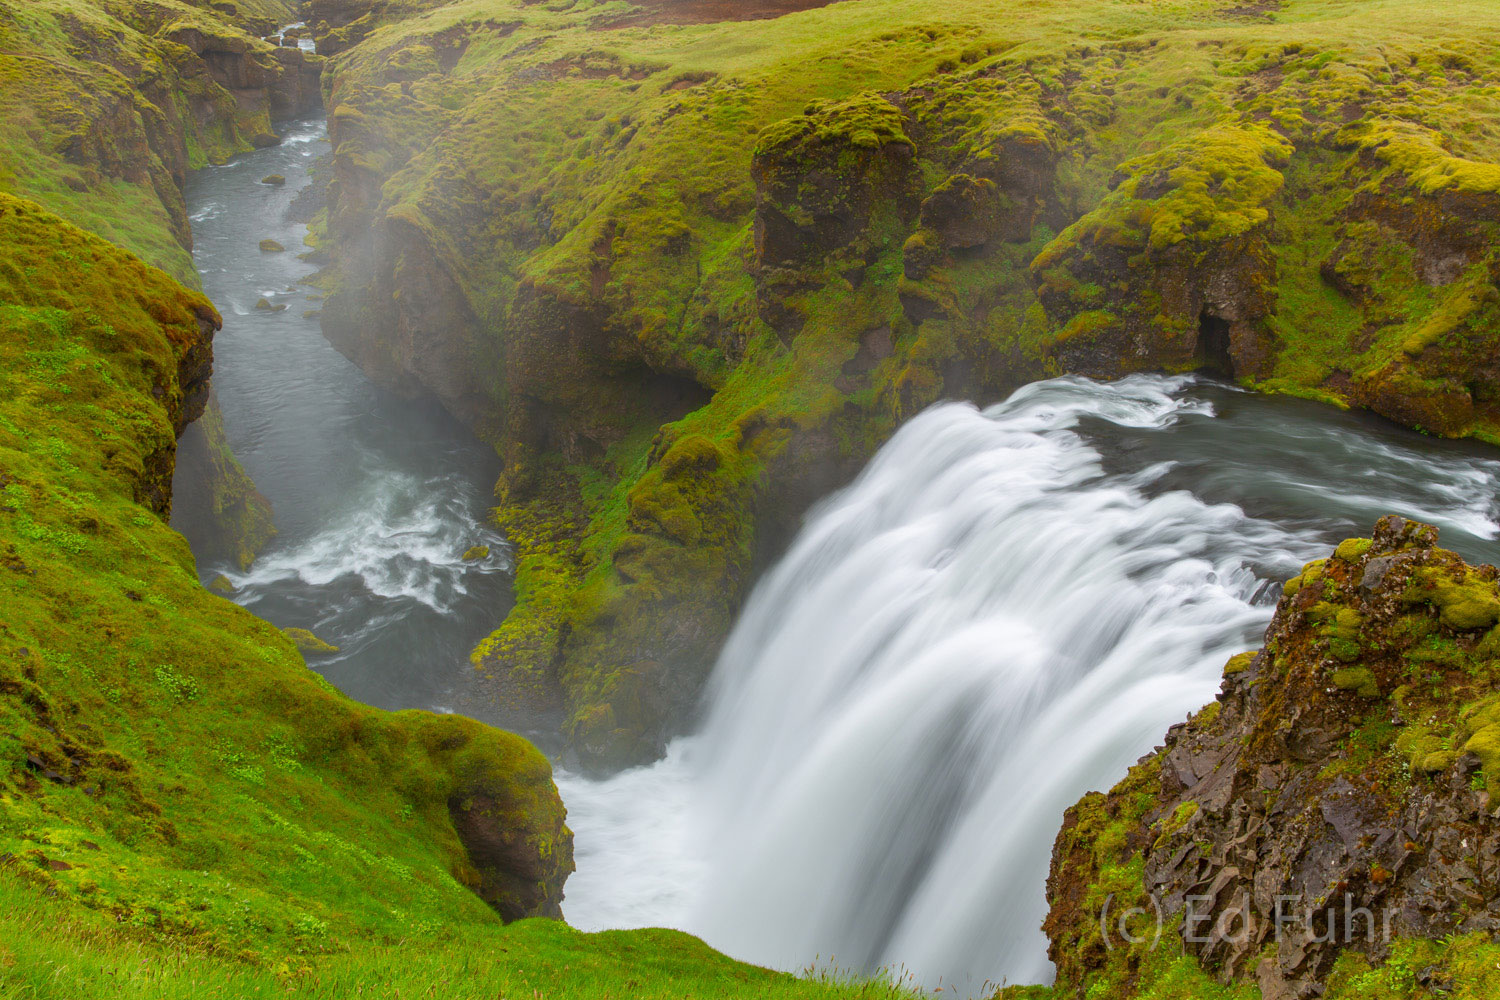 More than 20 waterfalls can be found by hiking along the Skoga River above its most famous falls, Skogafoss.